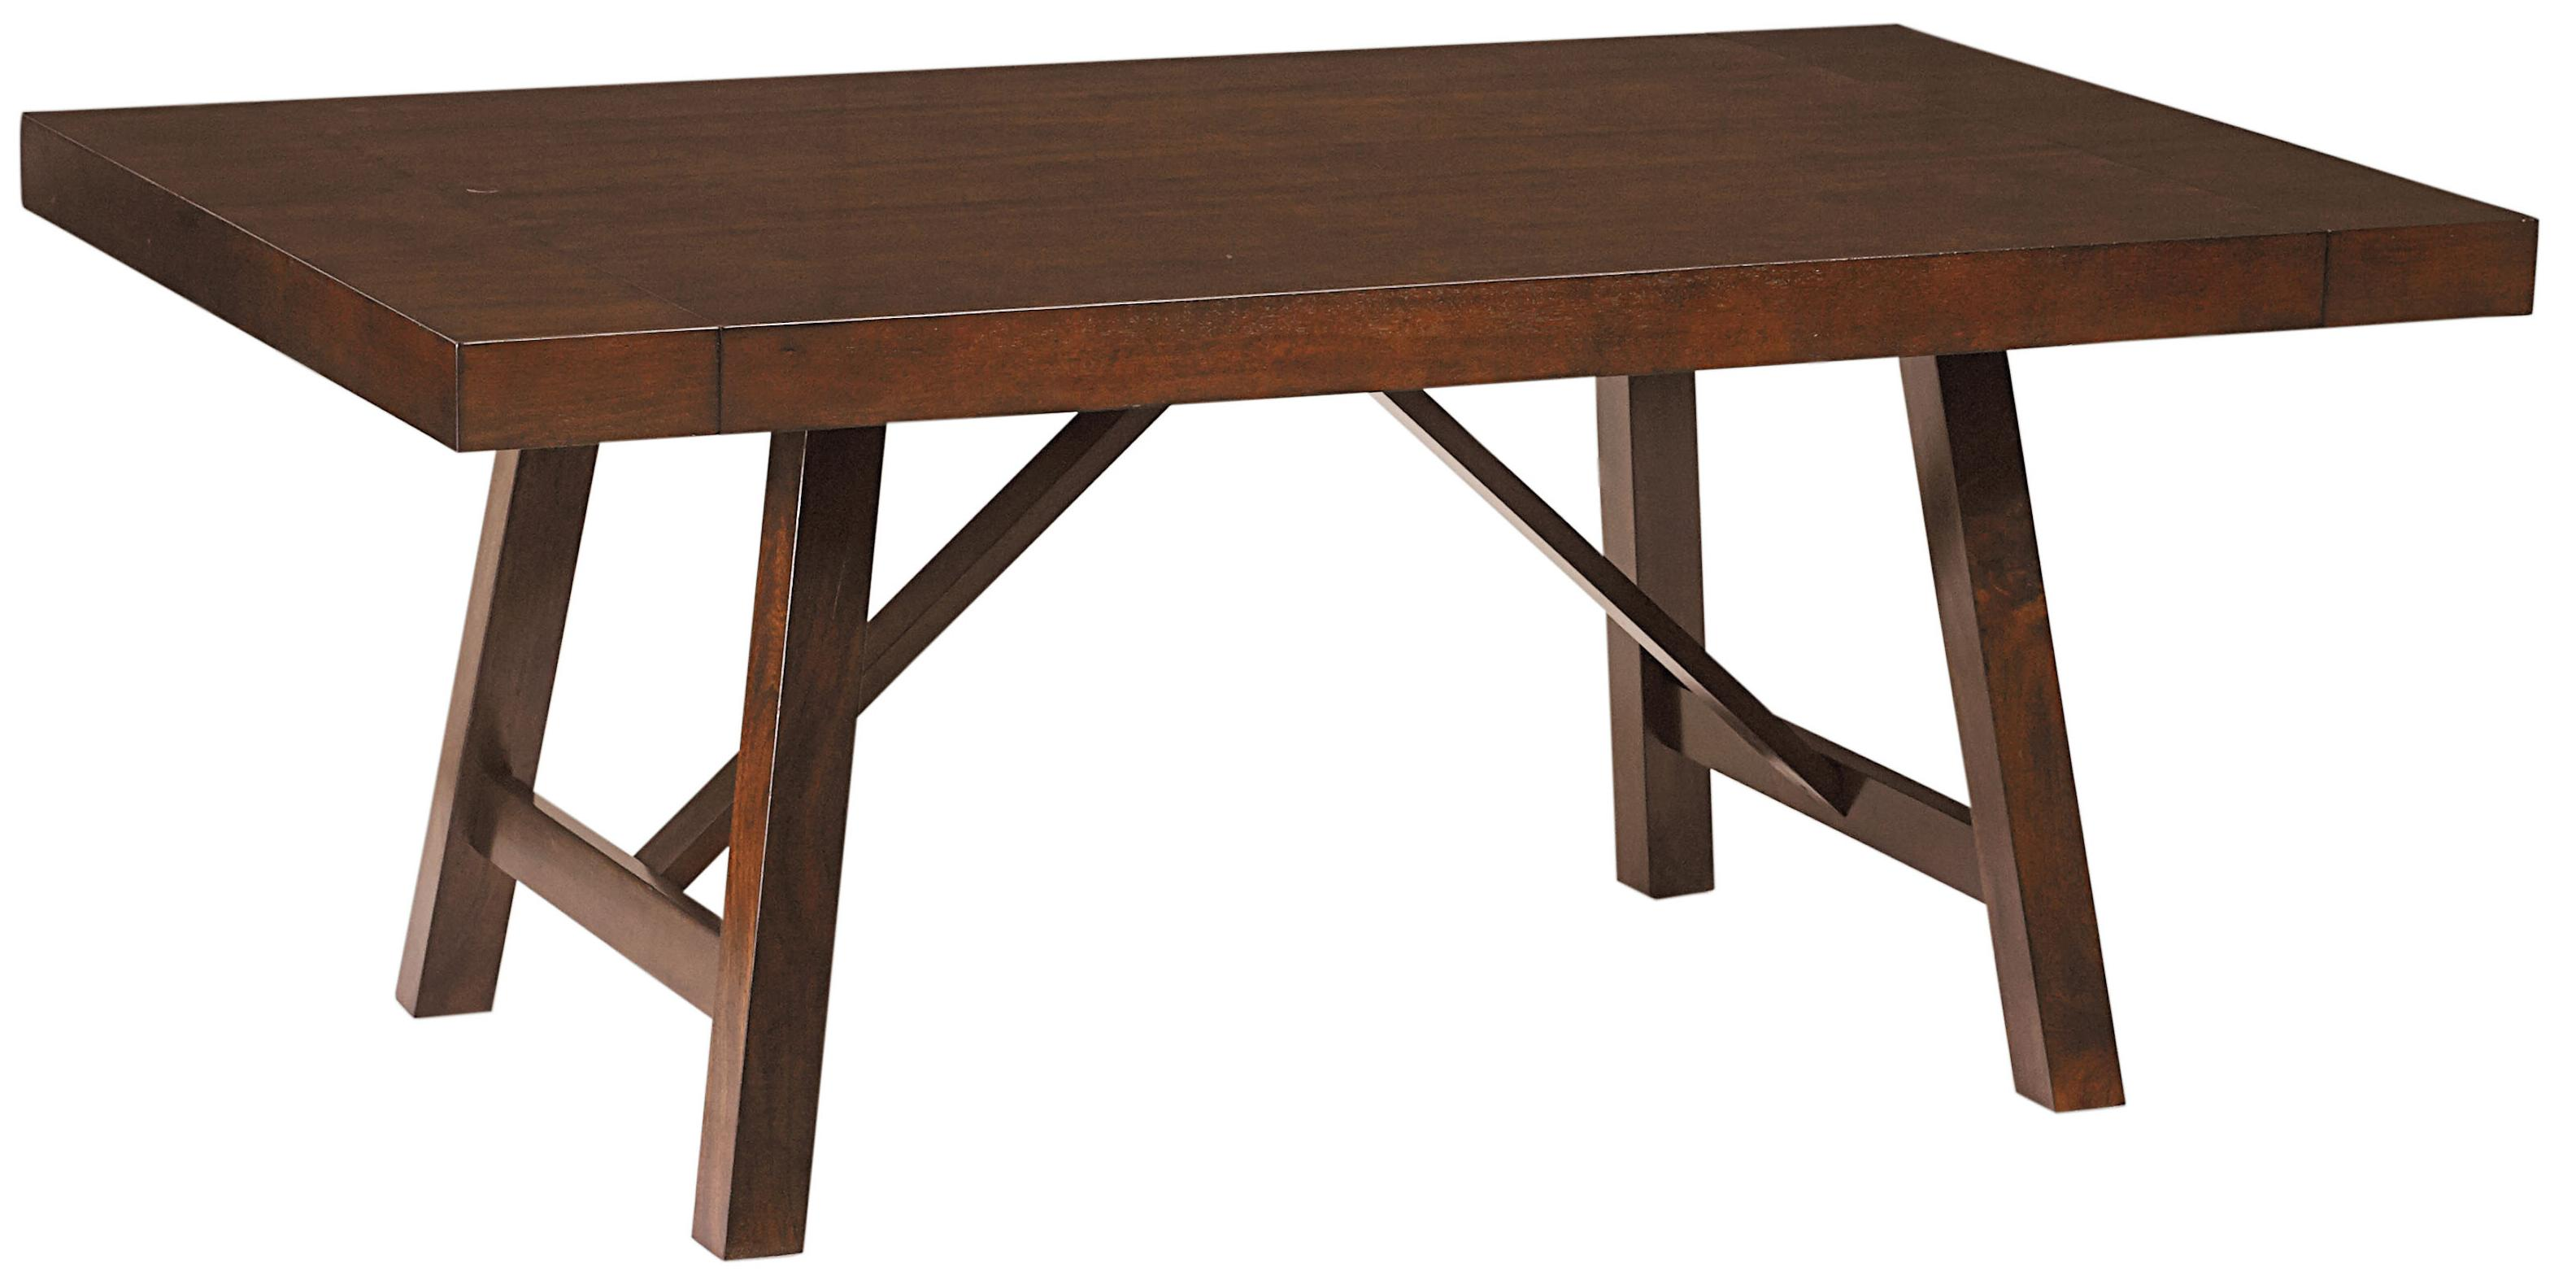 Trestle Dining Room Table With Two Leaves By Standard